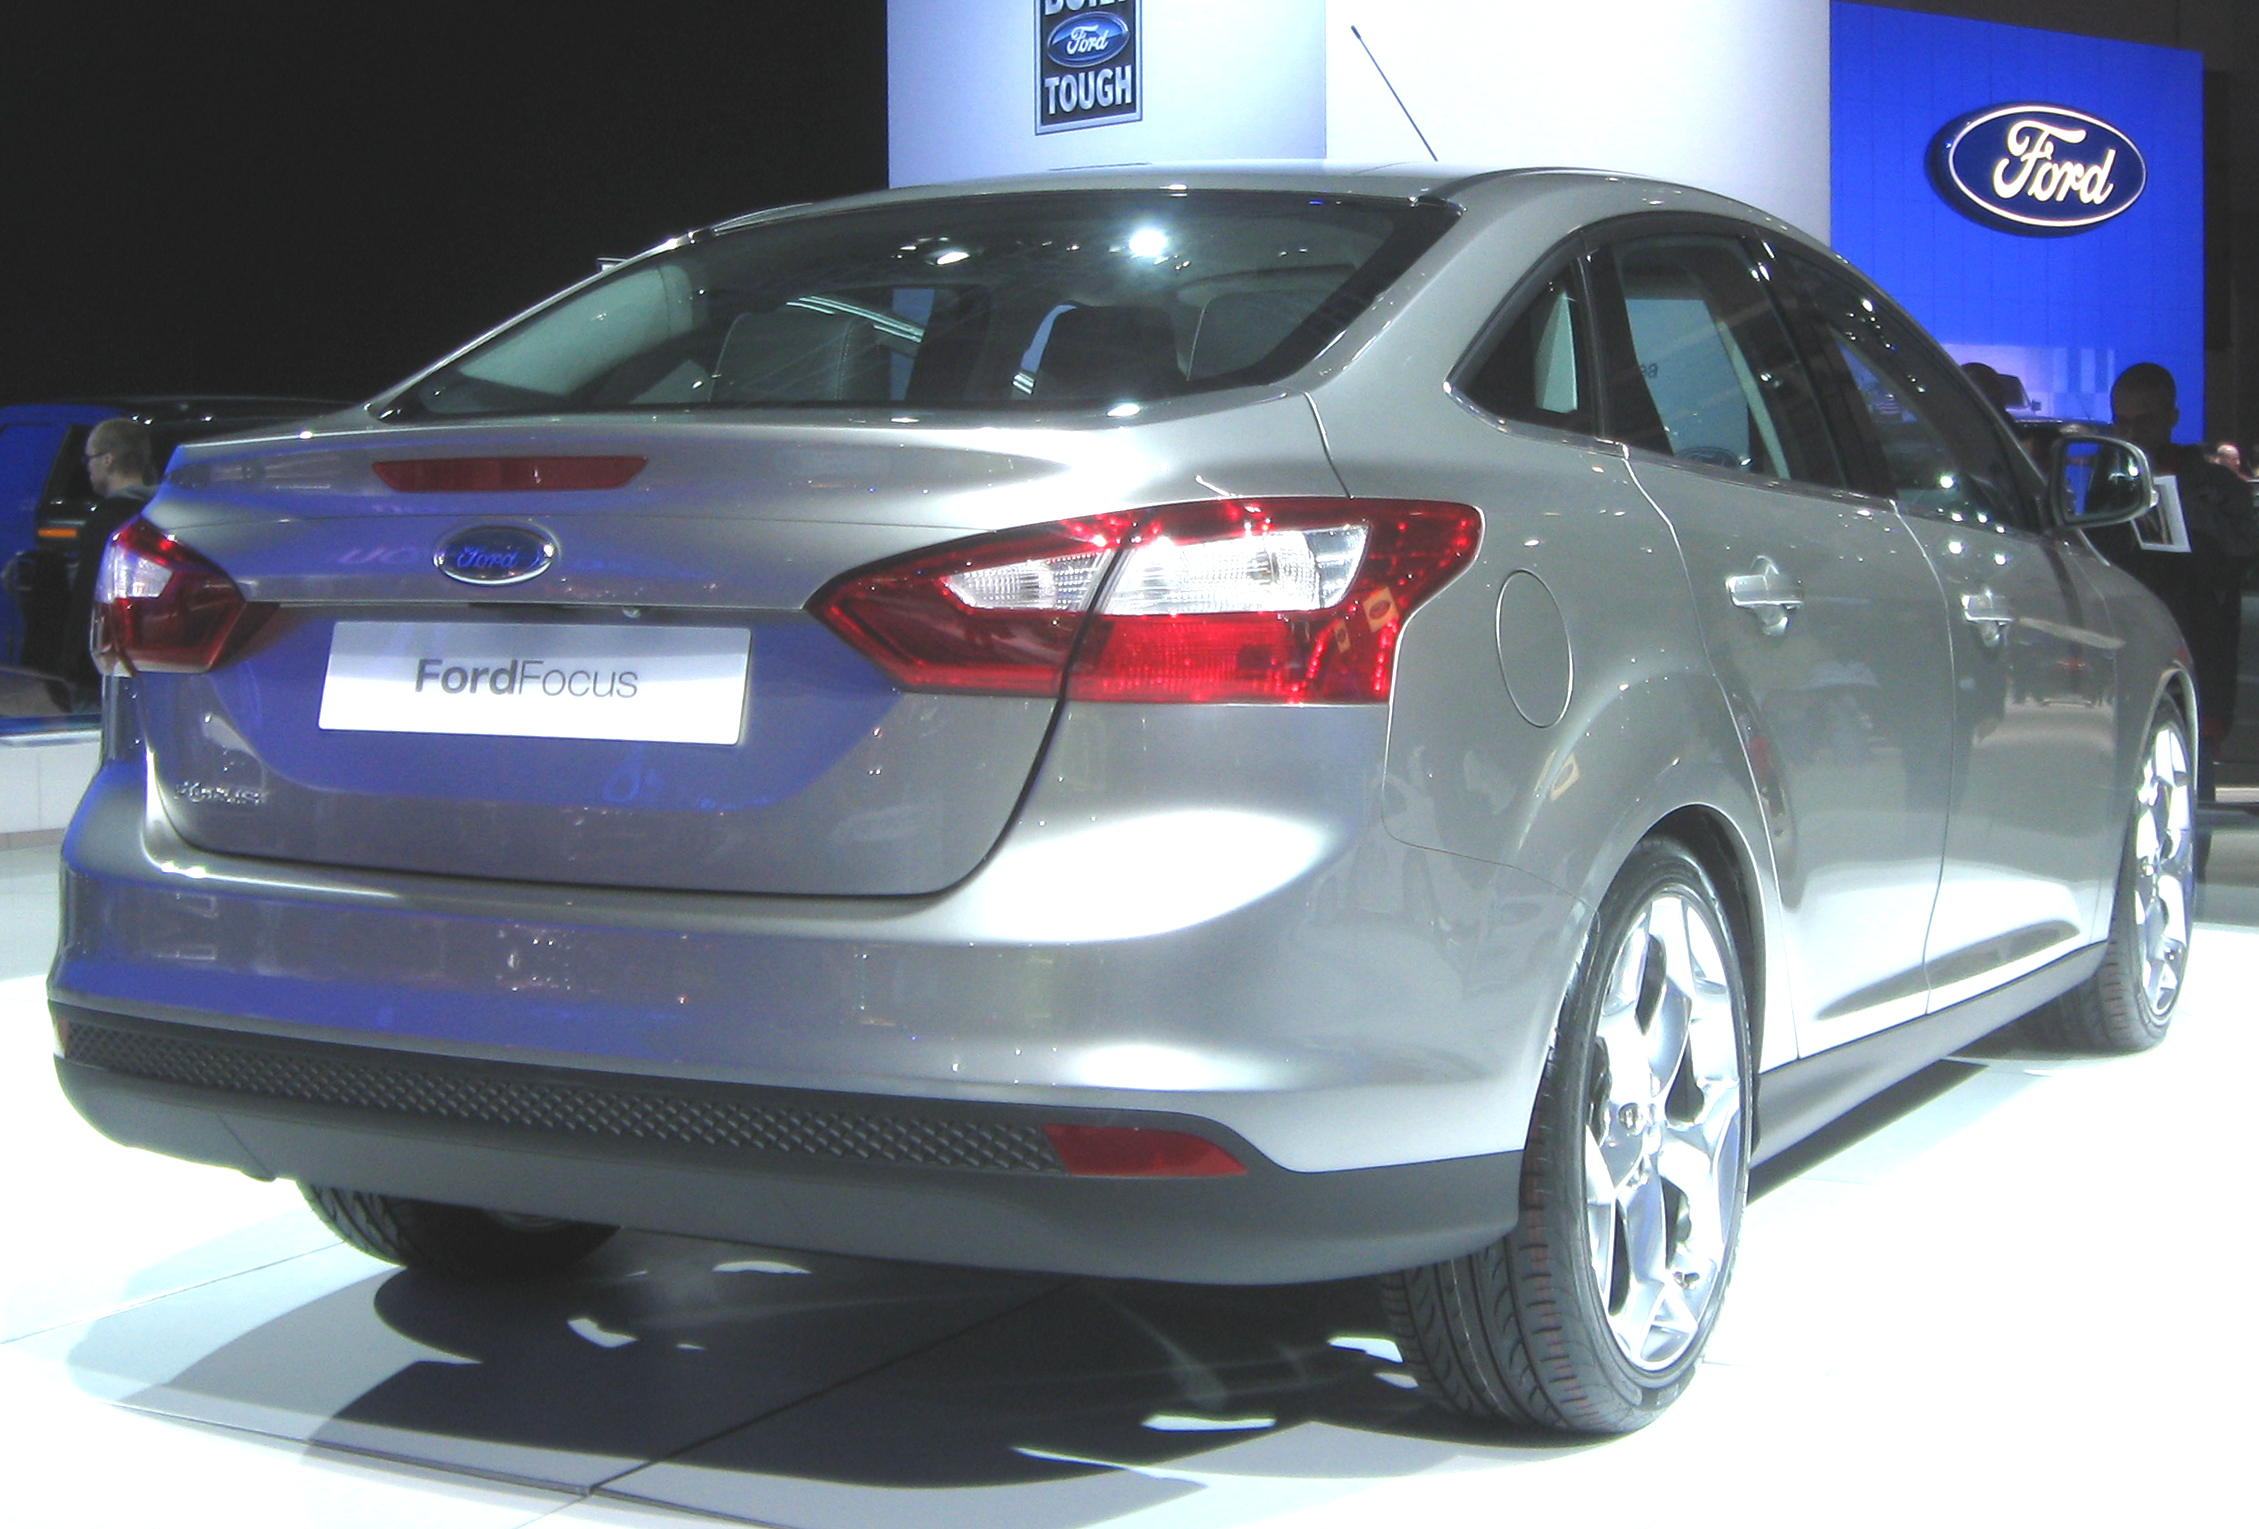 file 2012 ford focus sedan rear 2010 wikimedia commons. Black Bedroom Furniture Sets. Home Design Ideas